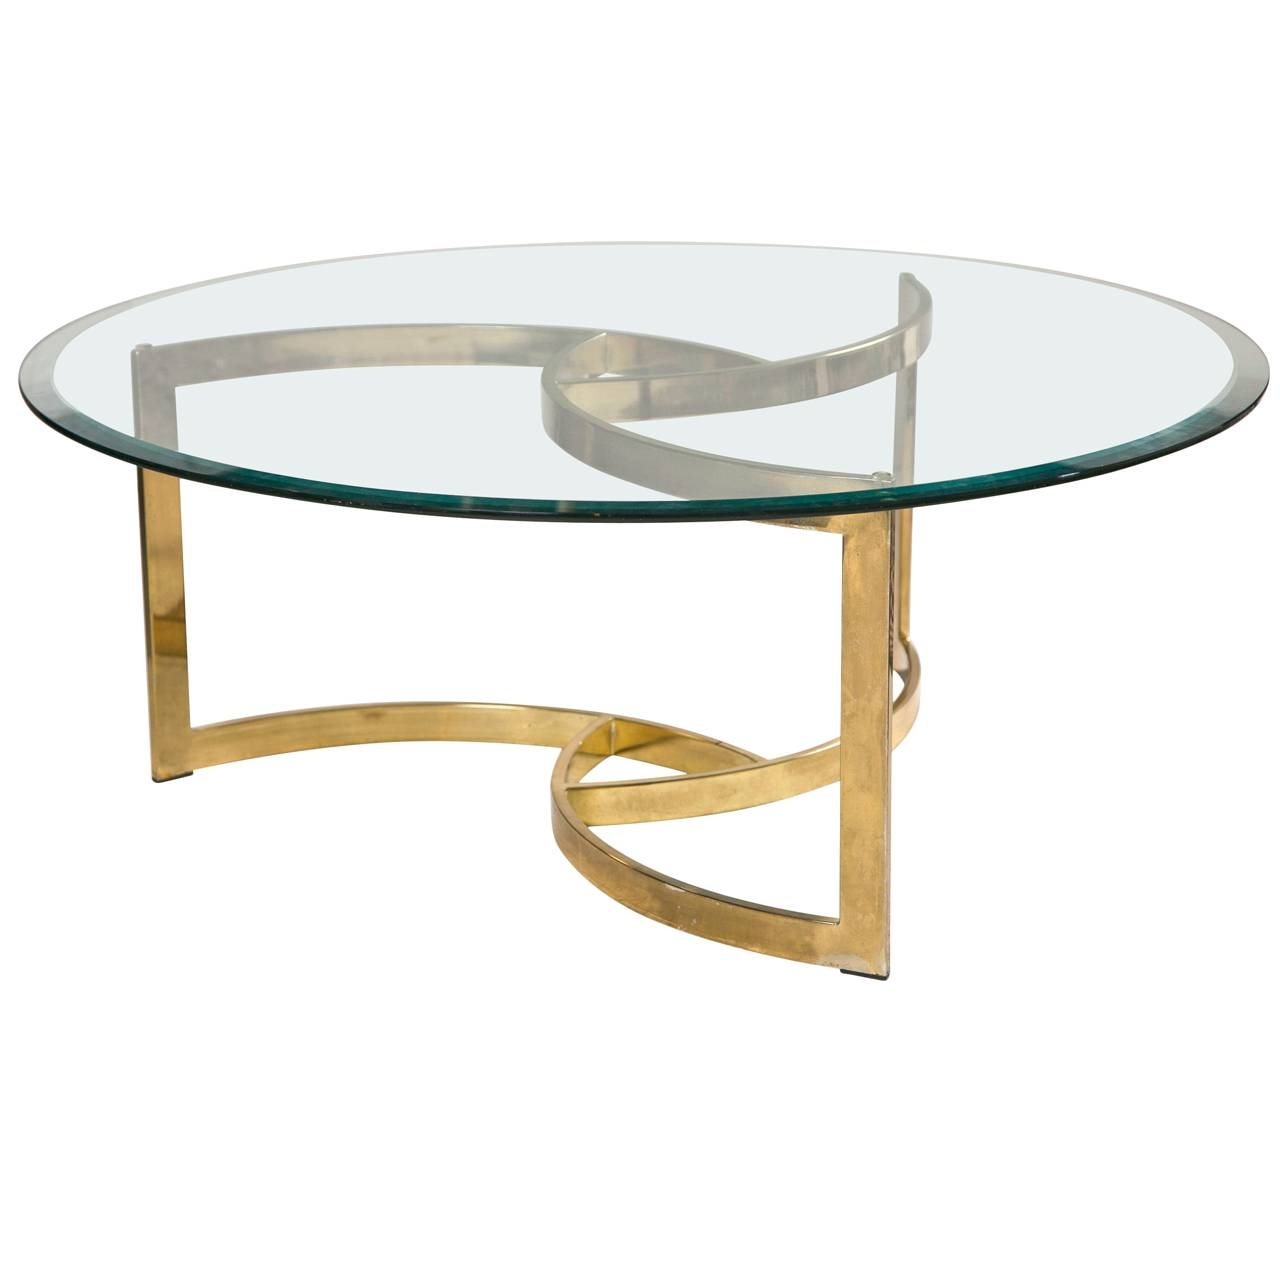 Fresh Antique Glass Top Coffee Table #24952 in Antique Glass Top Coffee Tables (Image 16 of 30)